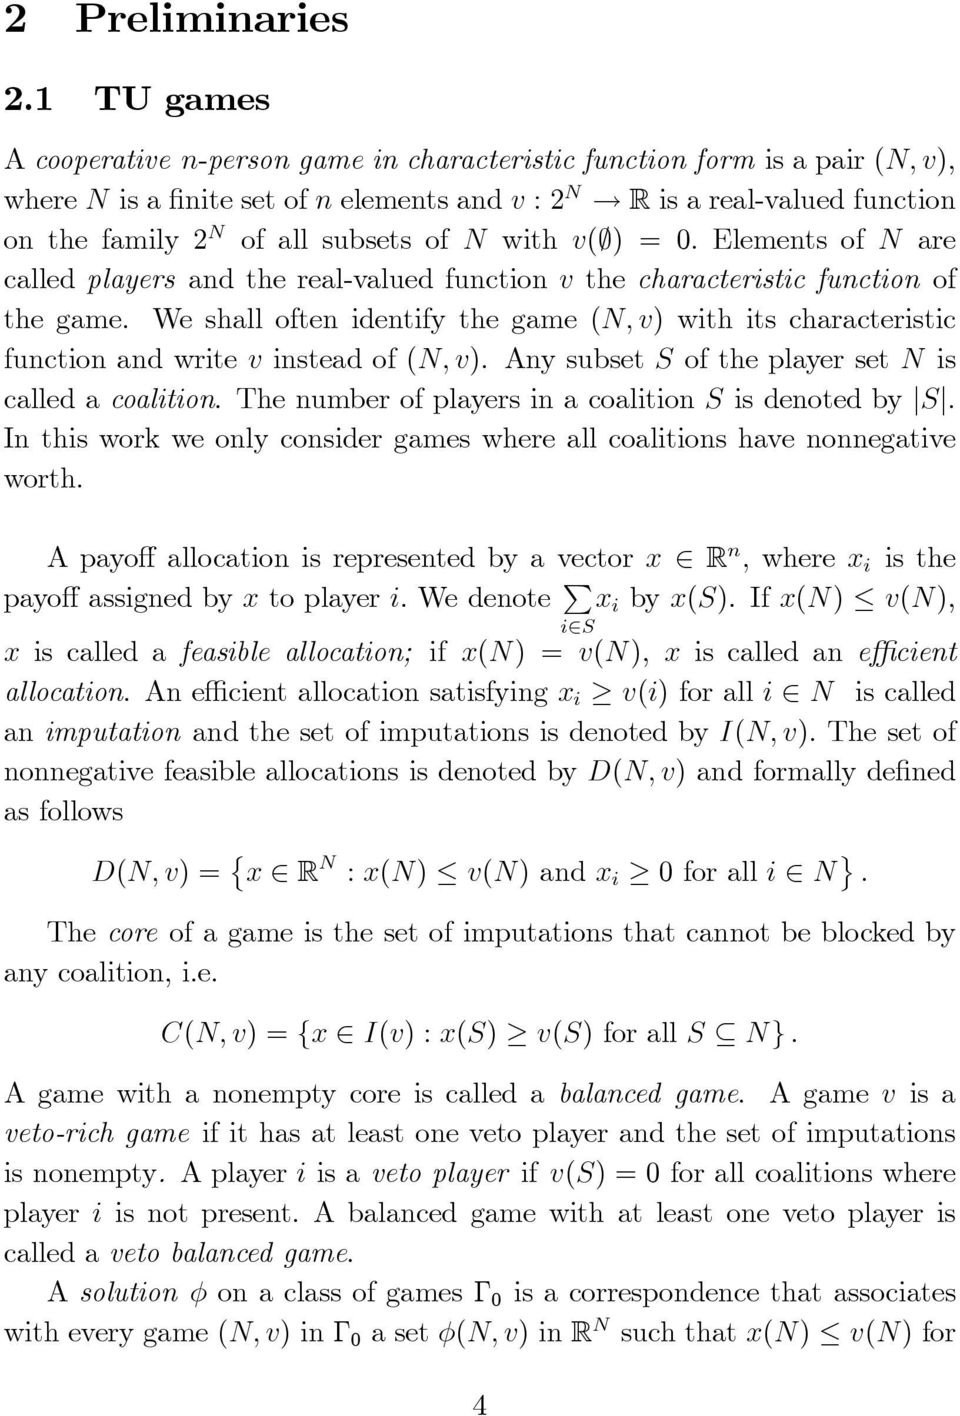 We shall often identify the game (N; v) with its characteristic function and write v instead of (N; v). Any subset S of the player set N is called a coalition.